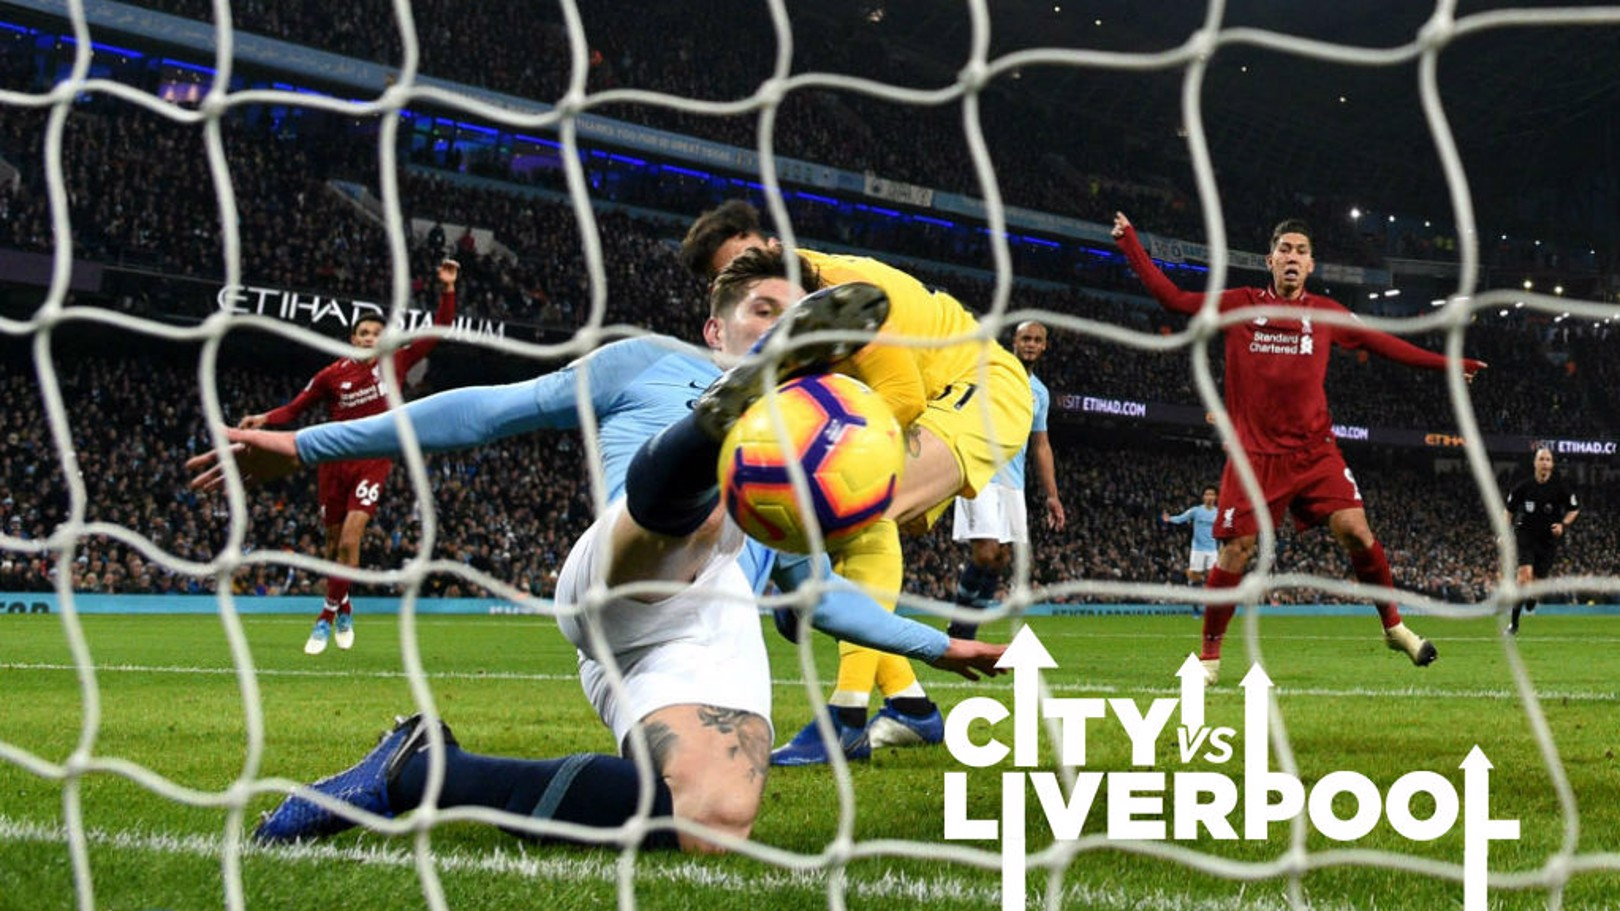 STONES: Reaction to Liverpool win!